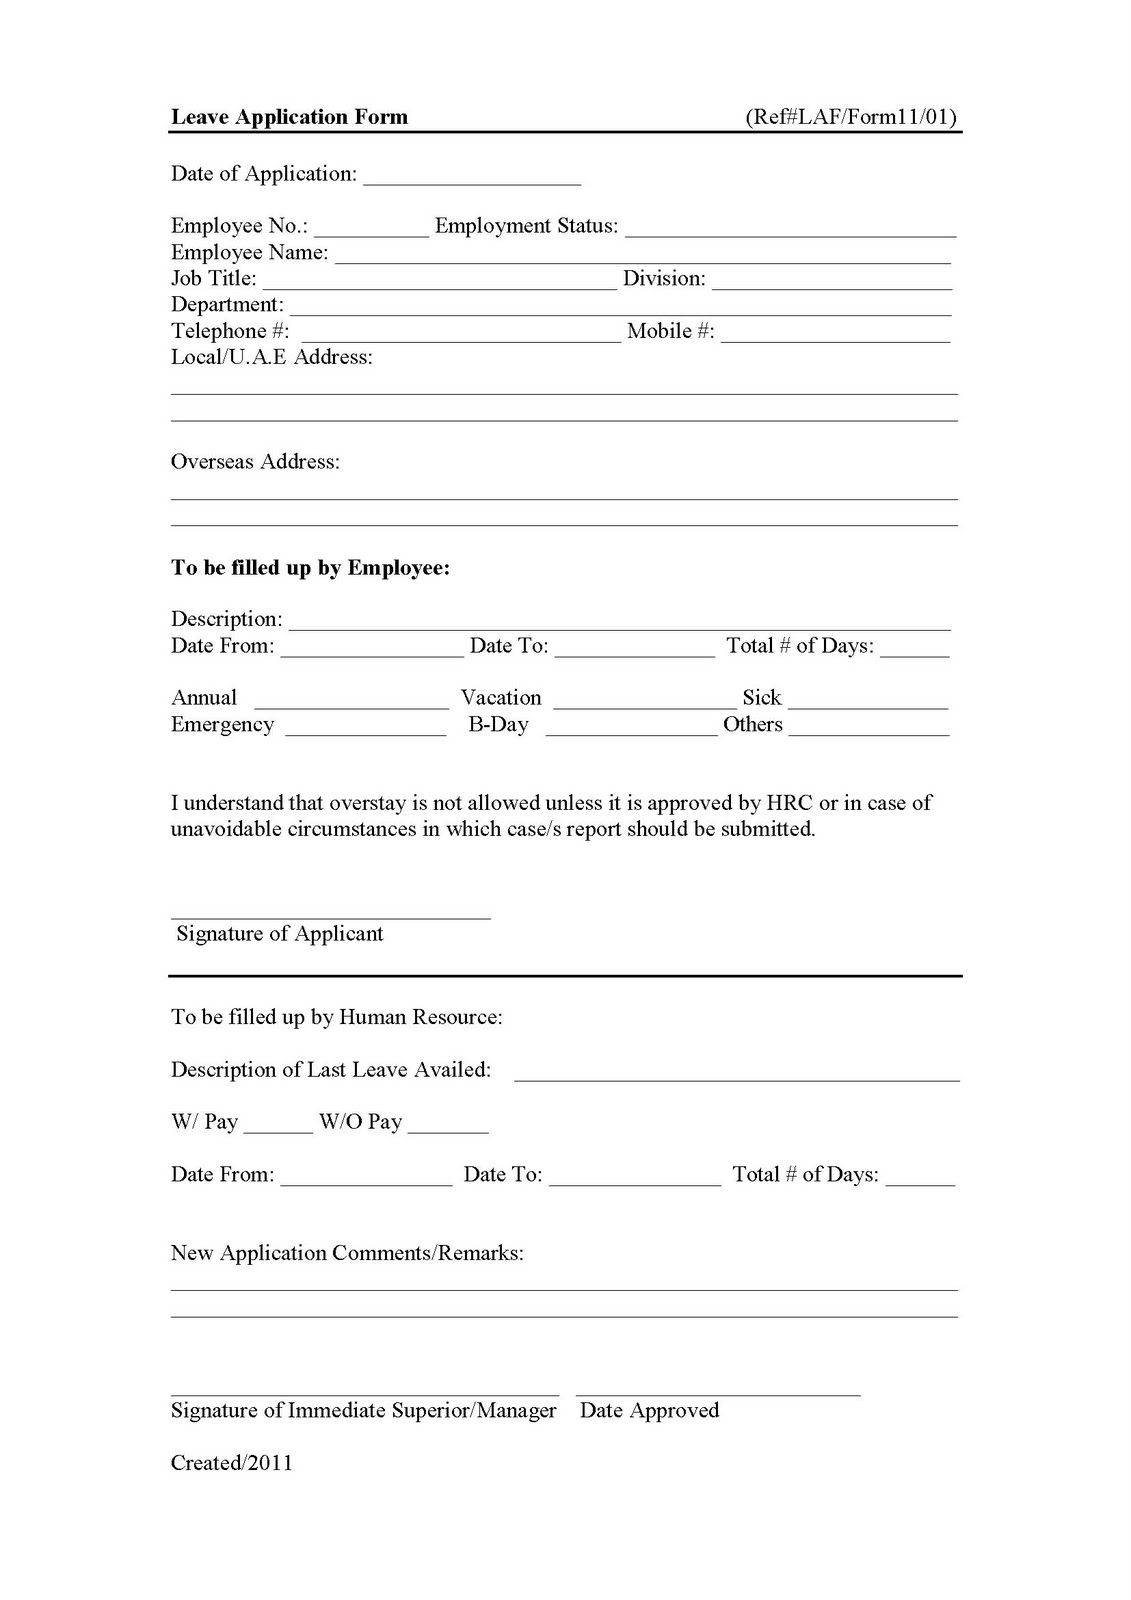 Leave Application Form. Posted By KSM At 7:03 AM  Leave Application Forms